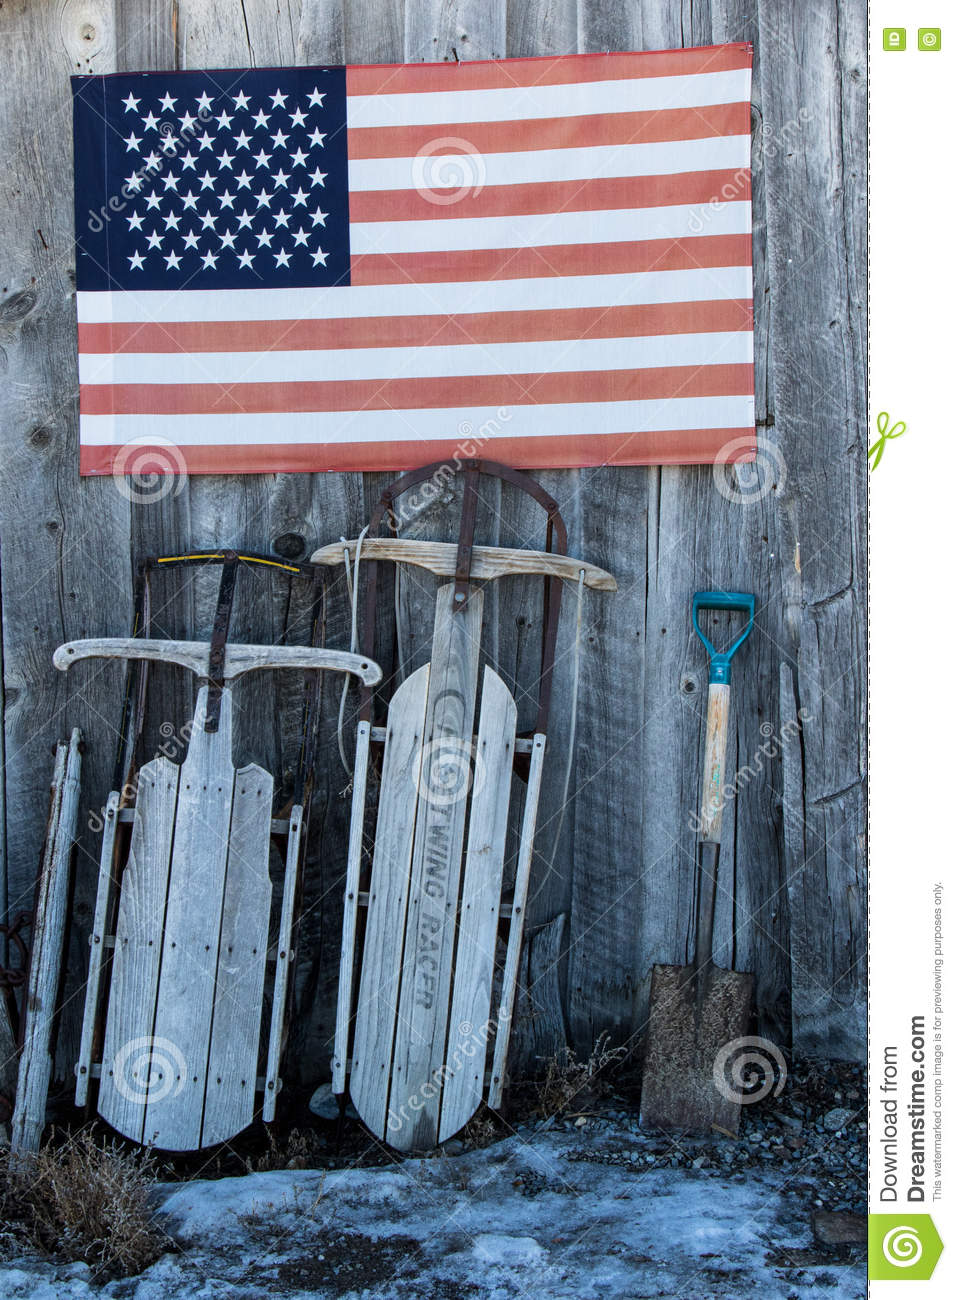 Two sleds and an American flag